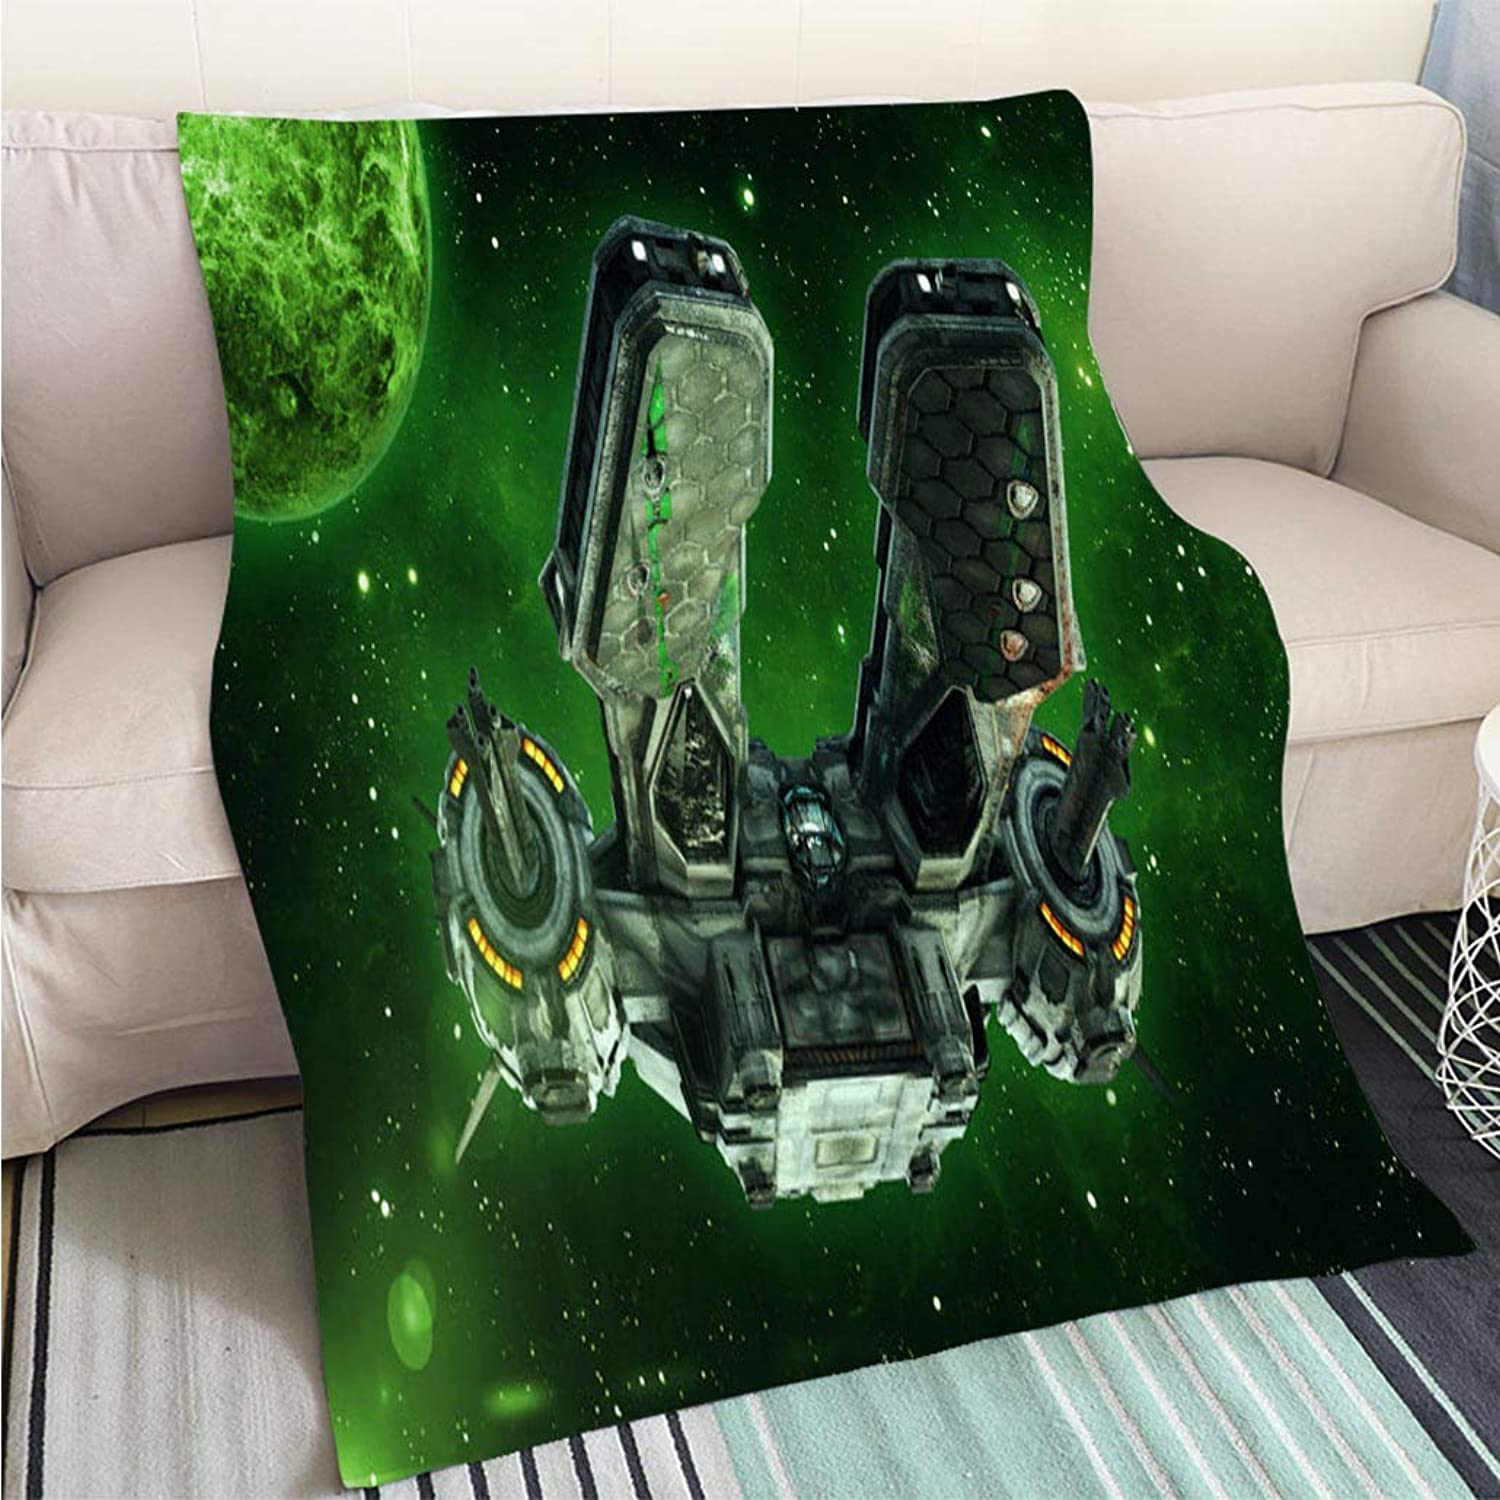 Creative Flannel Printed Blanket for Warm Bedroom Alien Spaceship in deep Space with Planets and Stars in The Background UFO Spacecraft Flying in The Perfect for Couch Sofa or Bed Cool Quilt